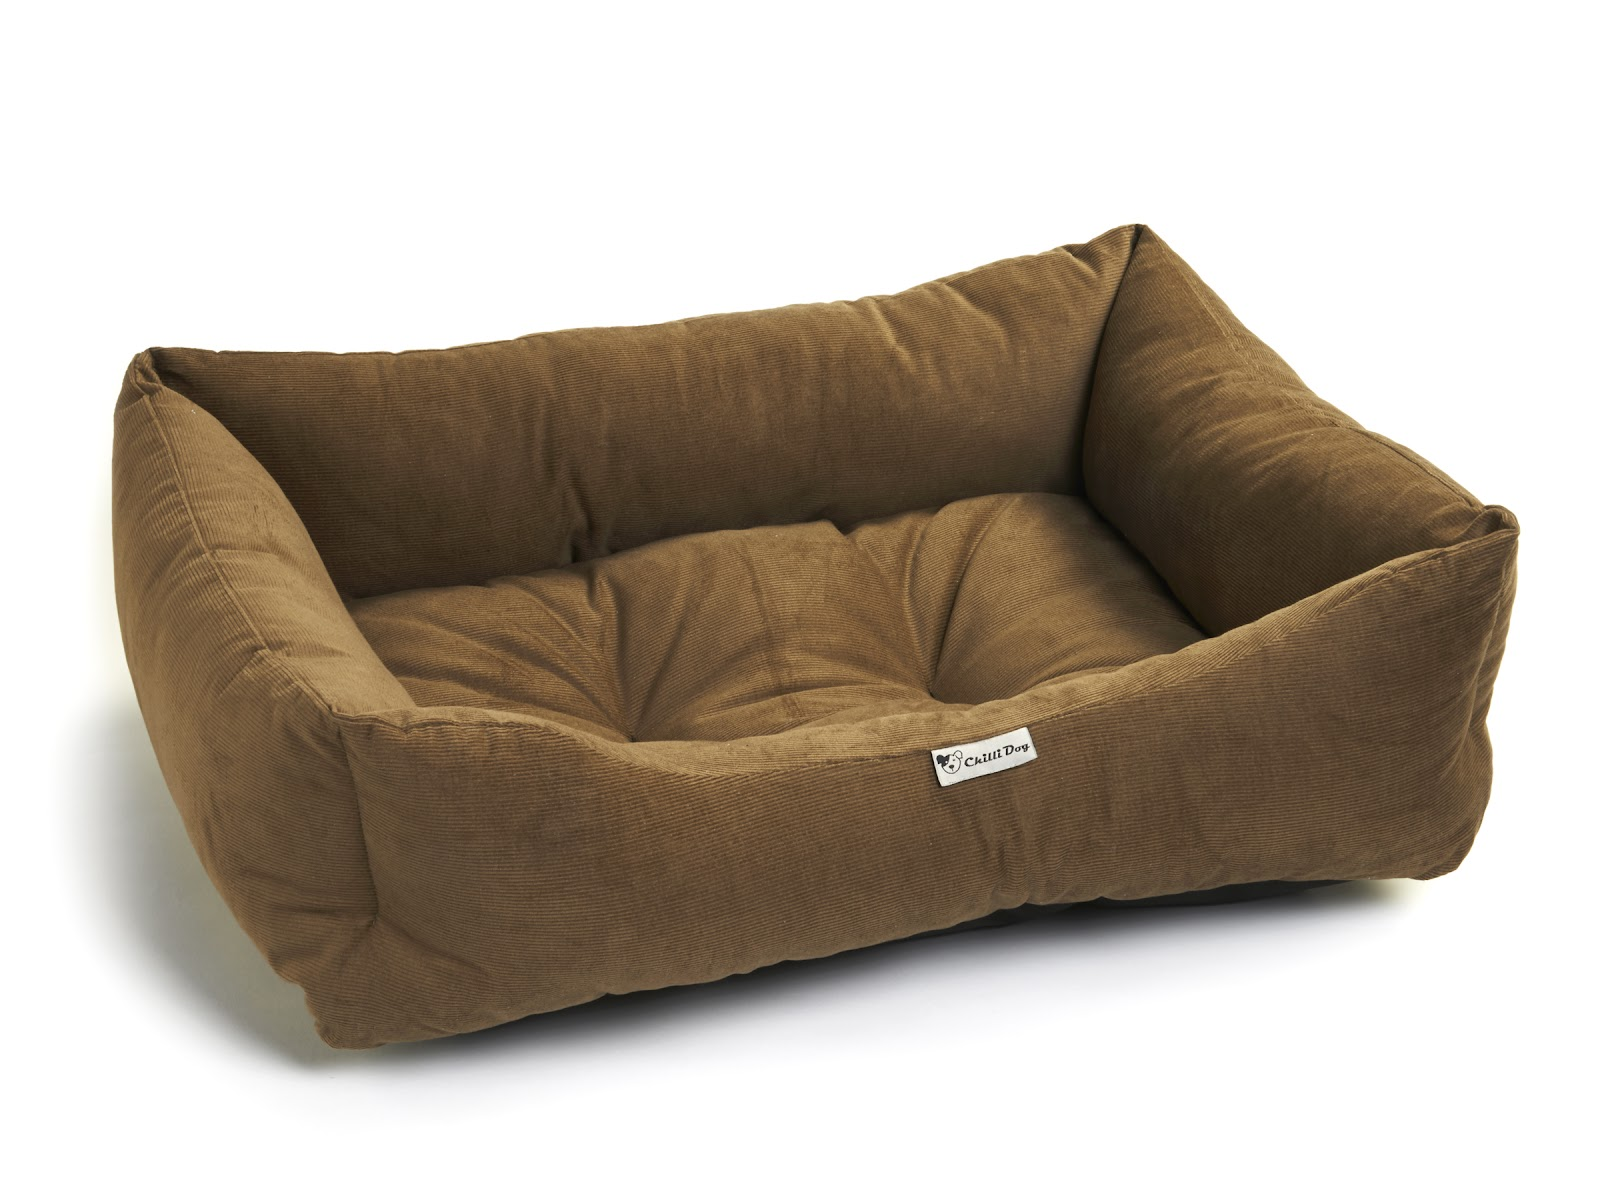 Chilli Dog Sofa Dog Beds Assorted